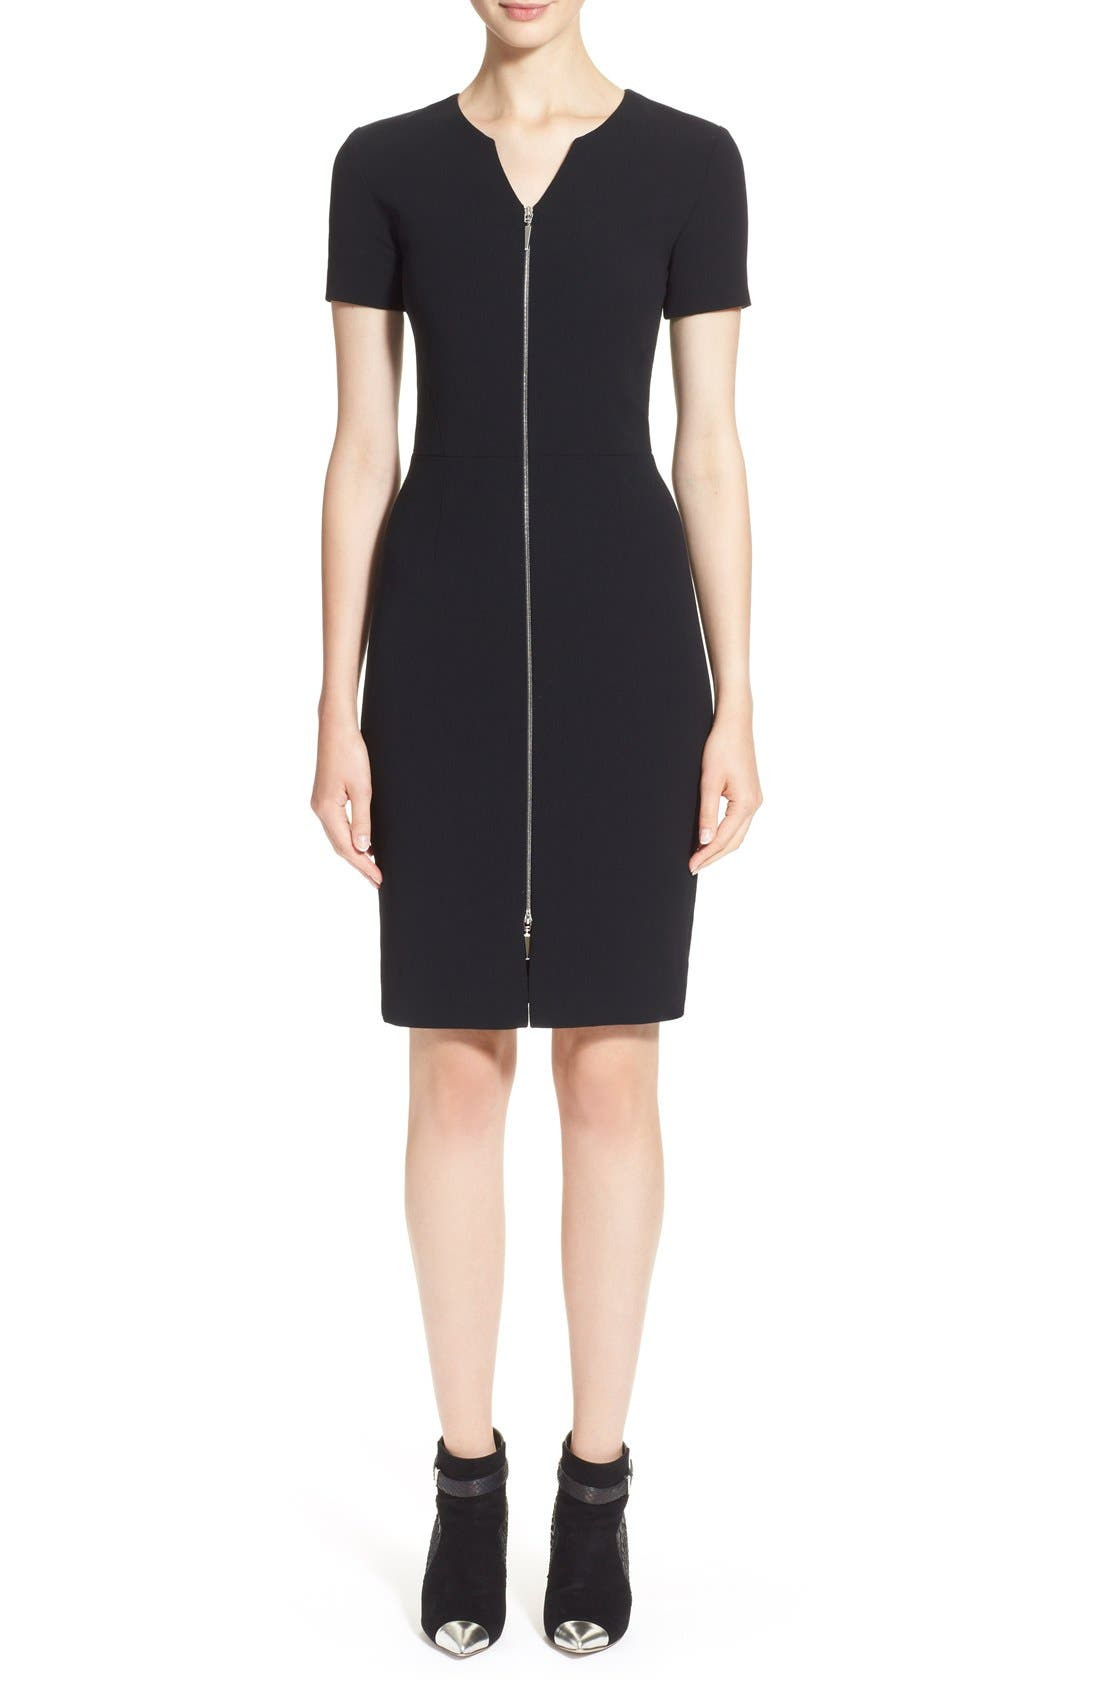 Alternate Image 1 Selected - Prabal Gurung Zip Front Stretch Wool Sheath Dress